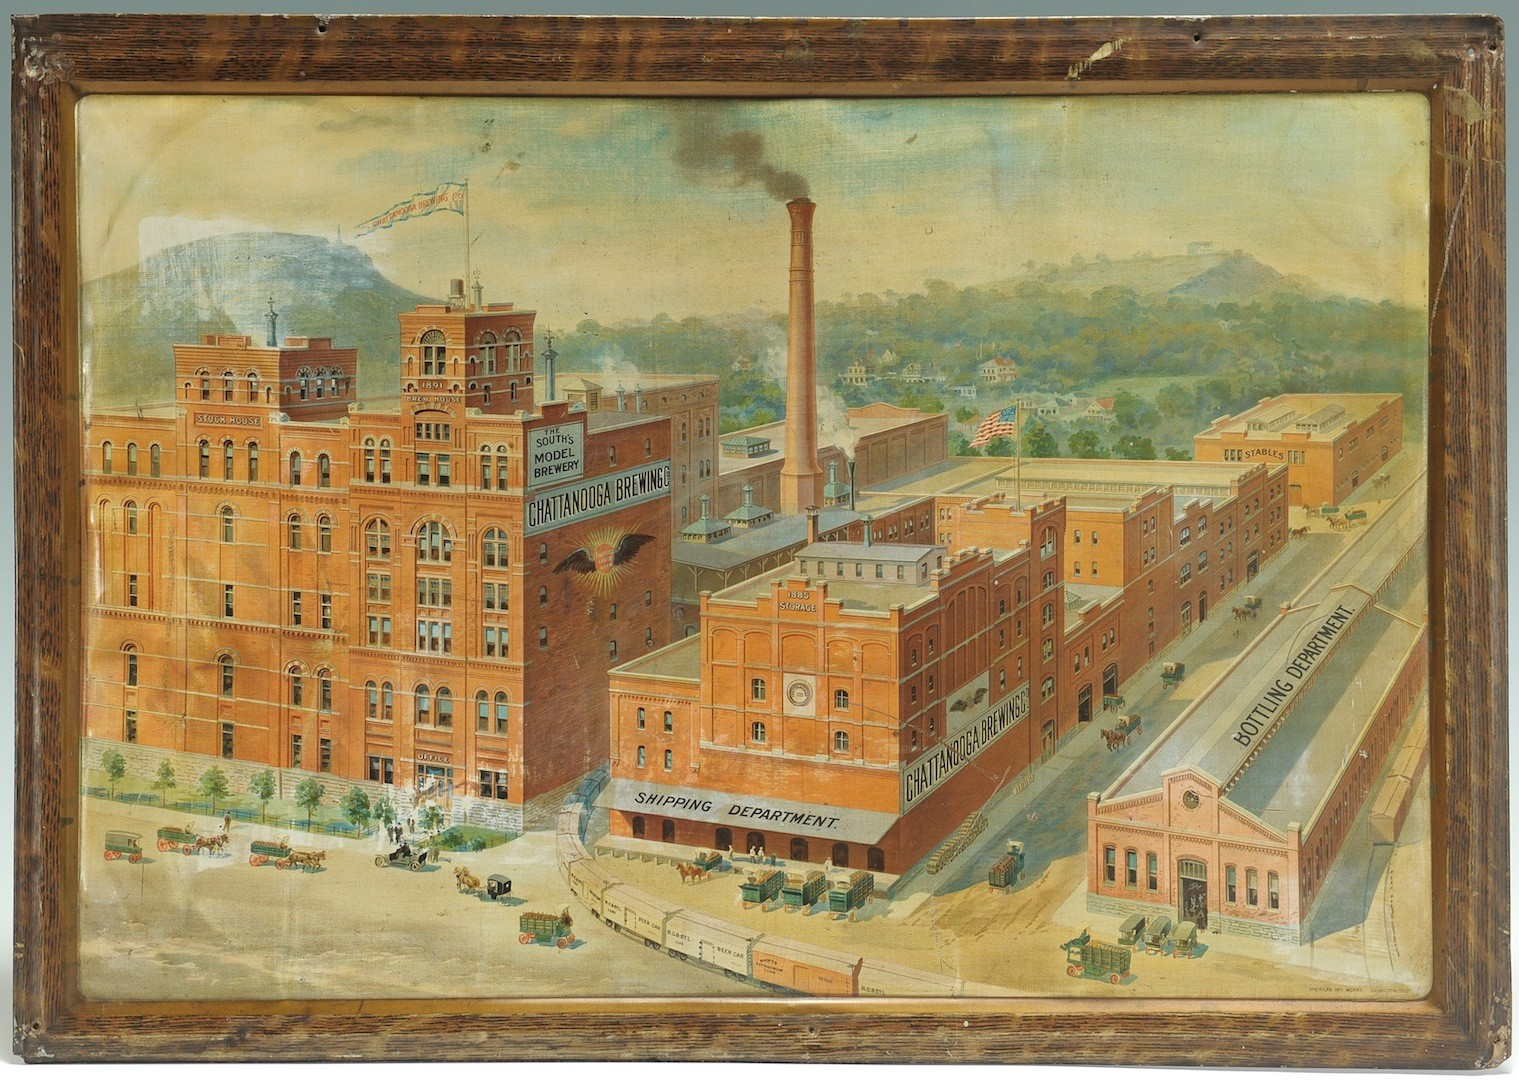 Lot __ Inv. #4276: Chattanooga Brewing Company Ad Sign on Tin